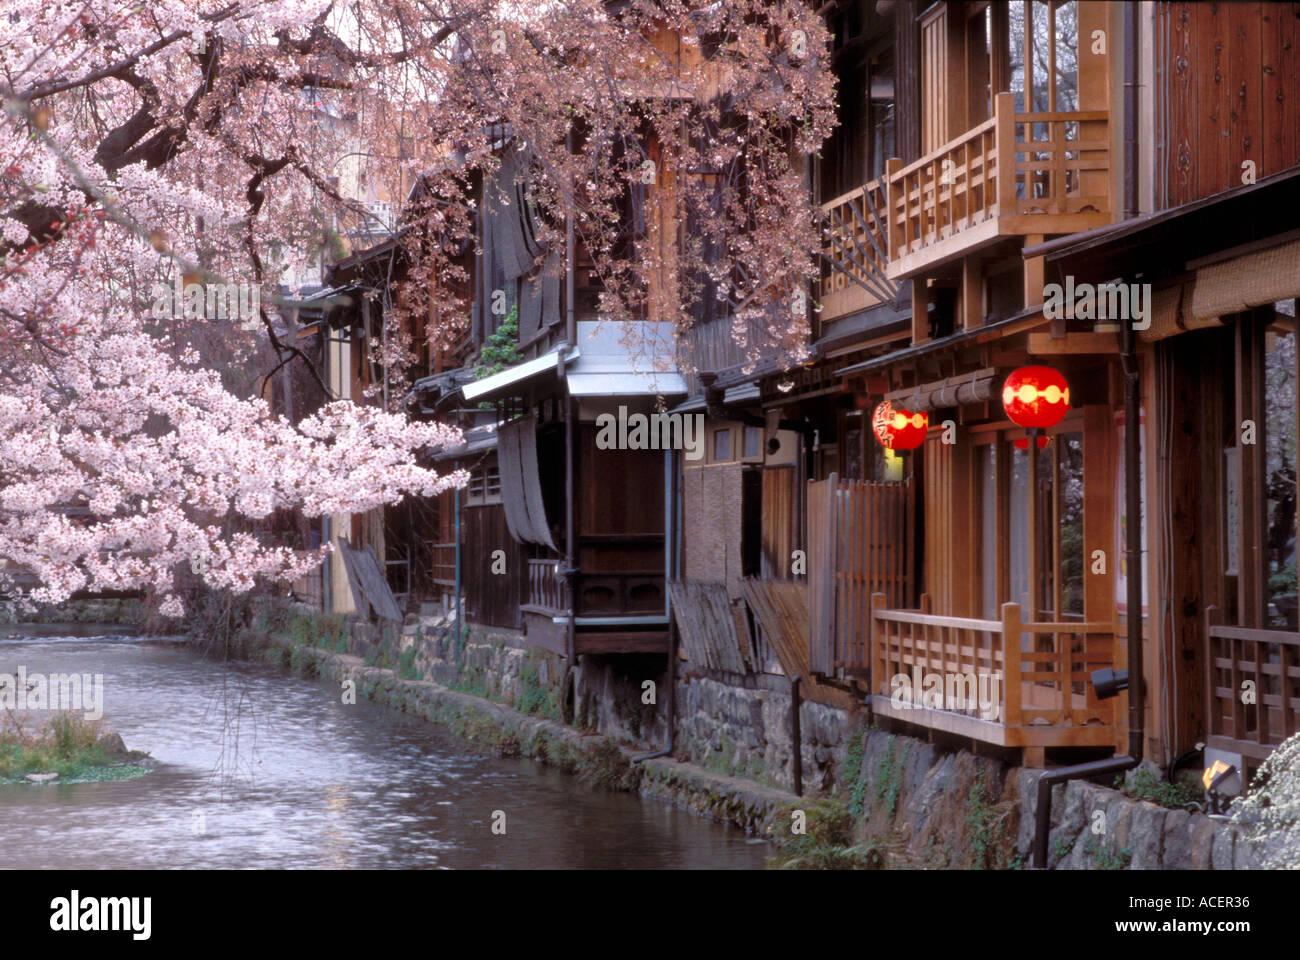 Old town houses and blossoming cherry trees beside Shirakawa River in historic Gion district of Kyoto - Stock Image